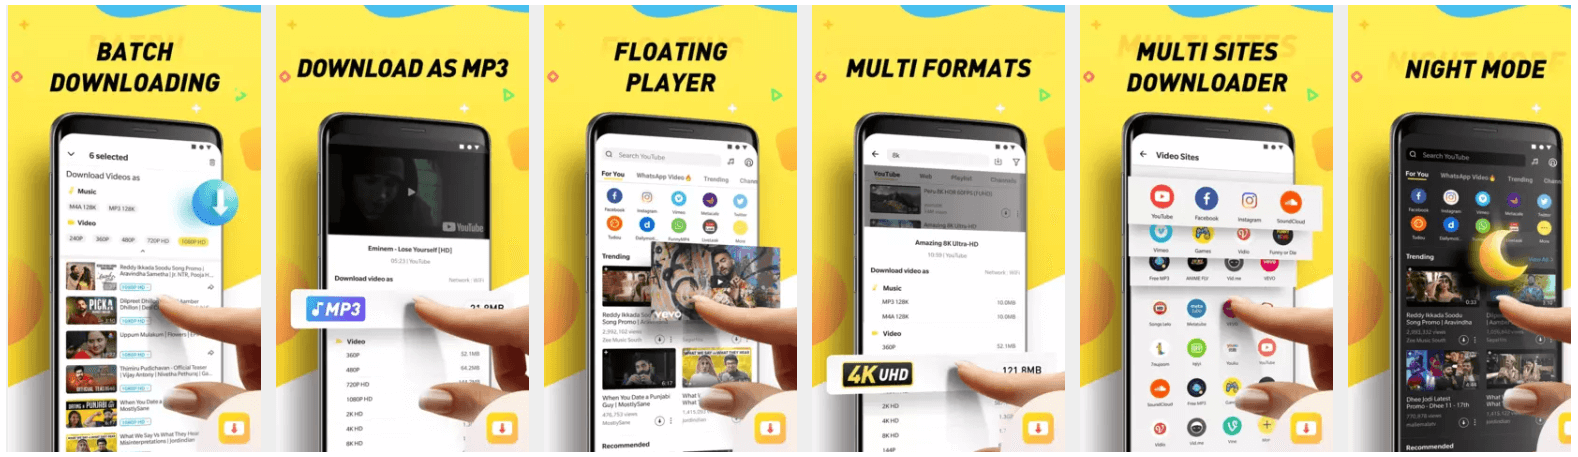 Top 10 Must have Android Apps to Make Smartphones Really